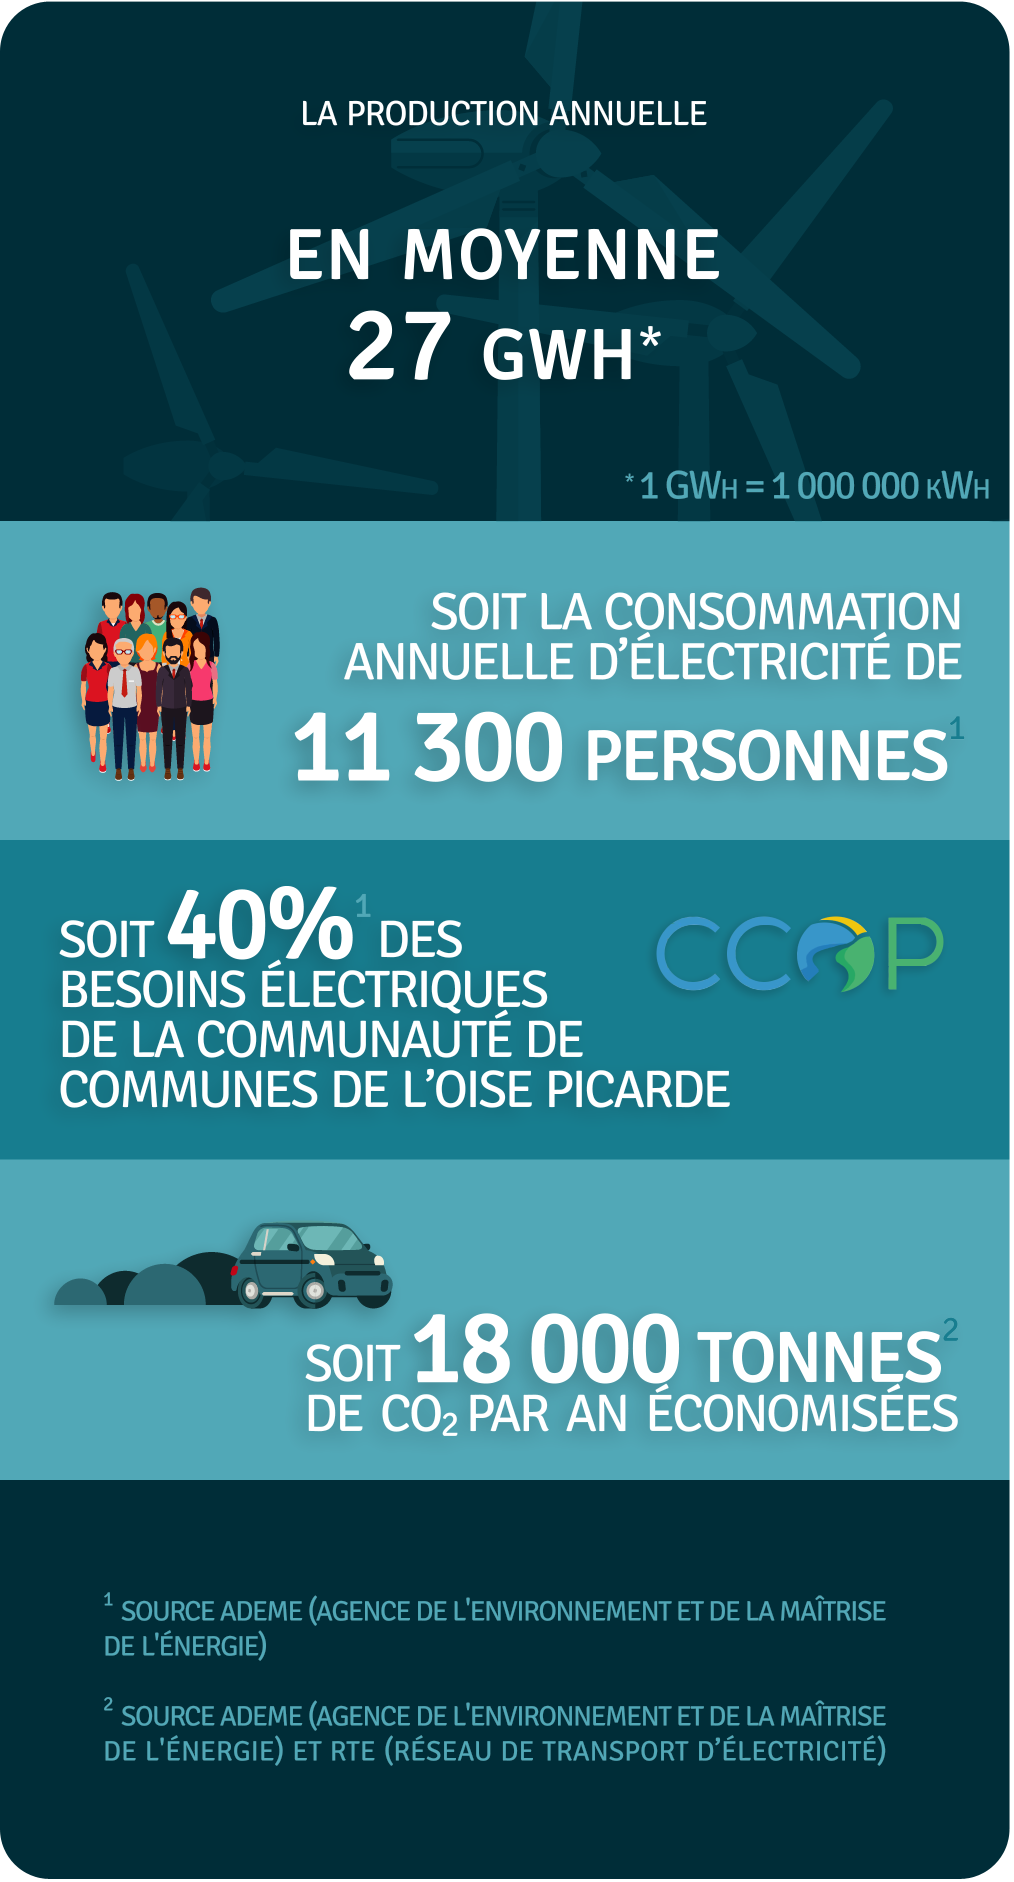 Production annuelle 27 000 000 kWh